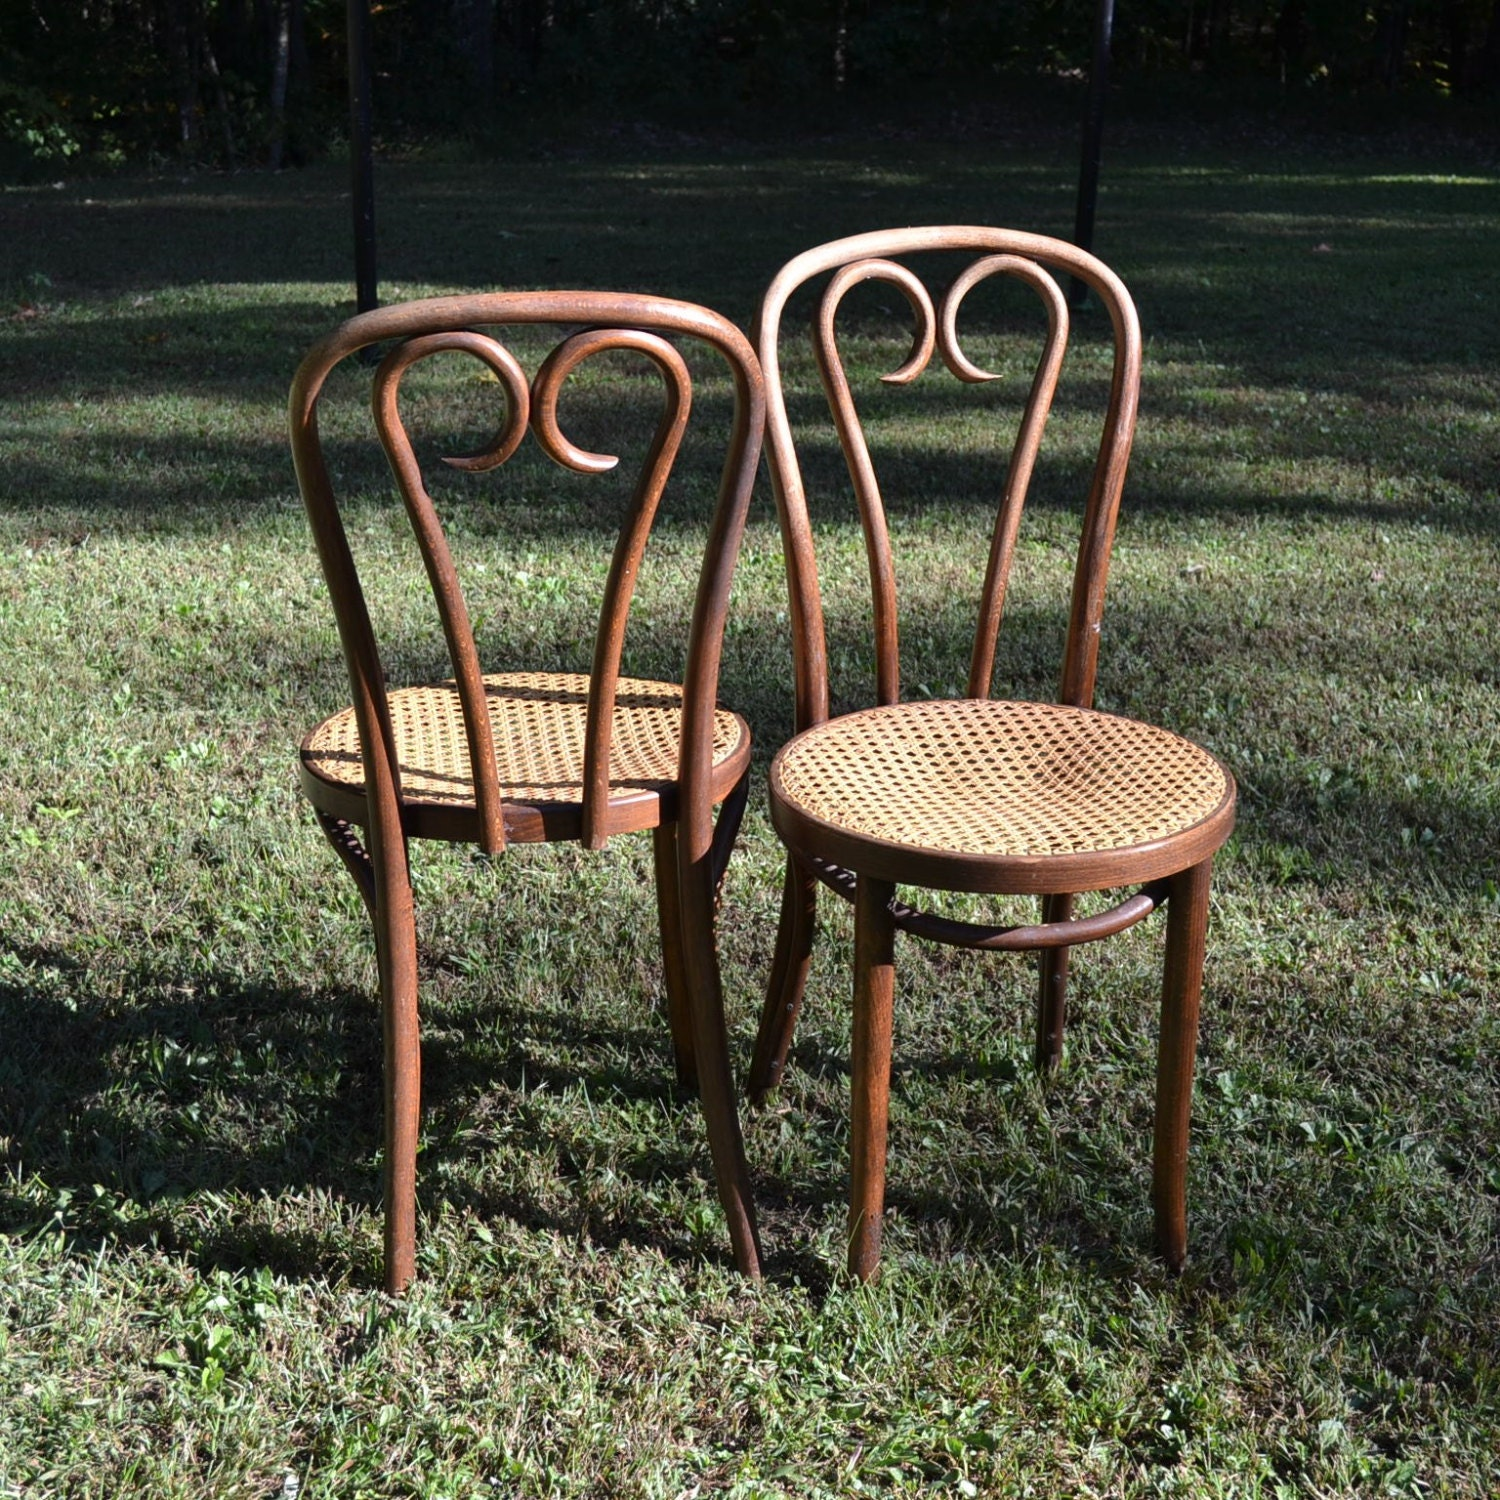 Vintage thonet style bentwood bistro chairs cane seat original - Cane bistro chairs ...